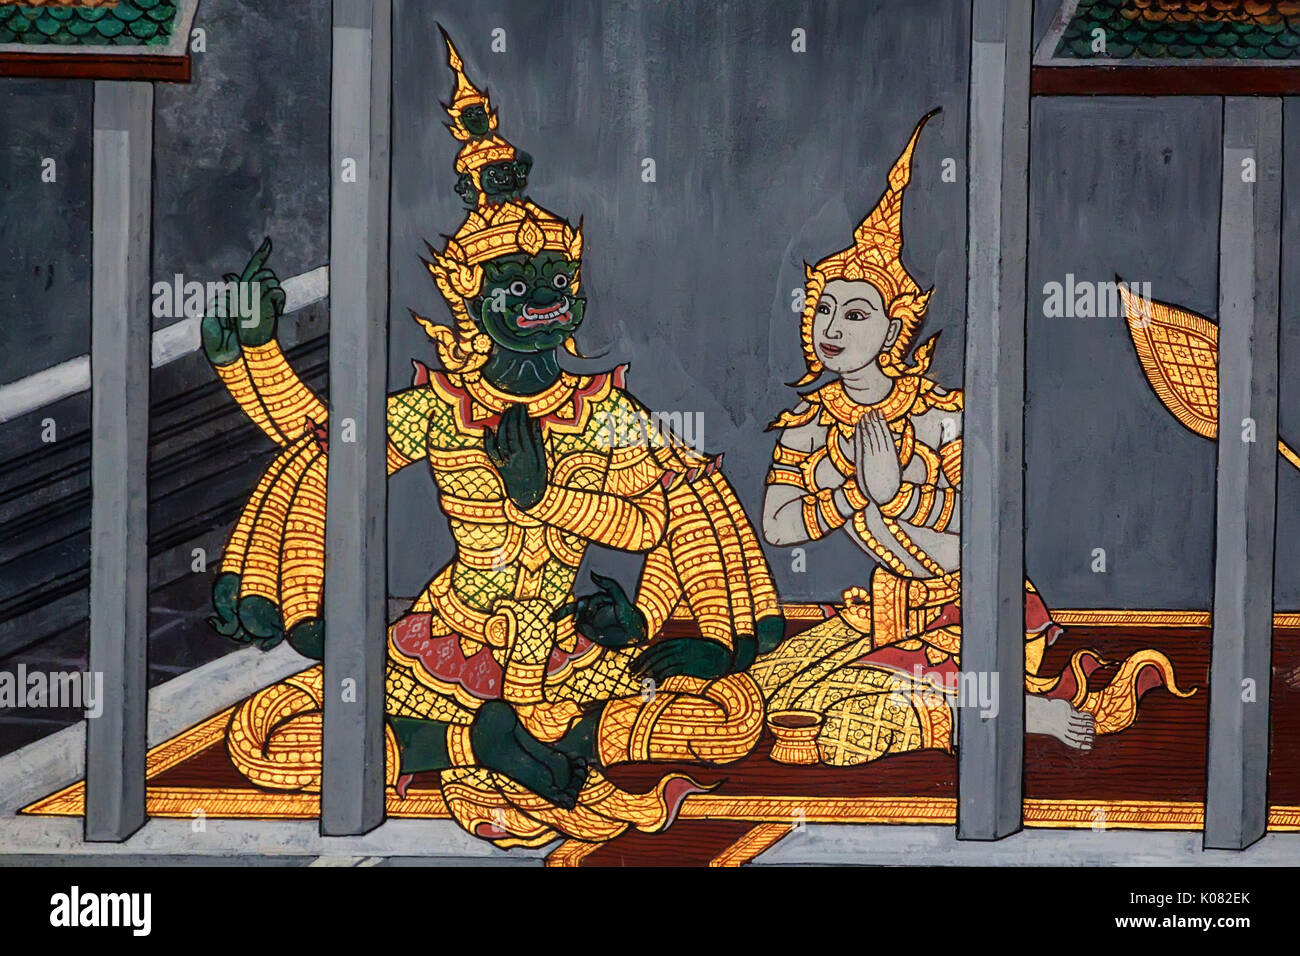 Close Up Beautiful Painting On Wall In Temple Of The Emerald Buddha Wat  Phra Kaew In Thailand. Ramakien Themes Based On Ancient Ramayana Epos